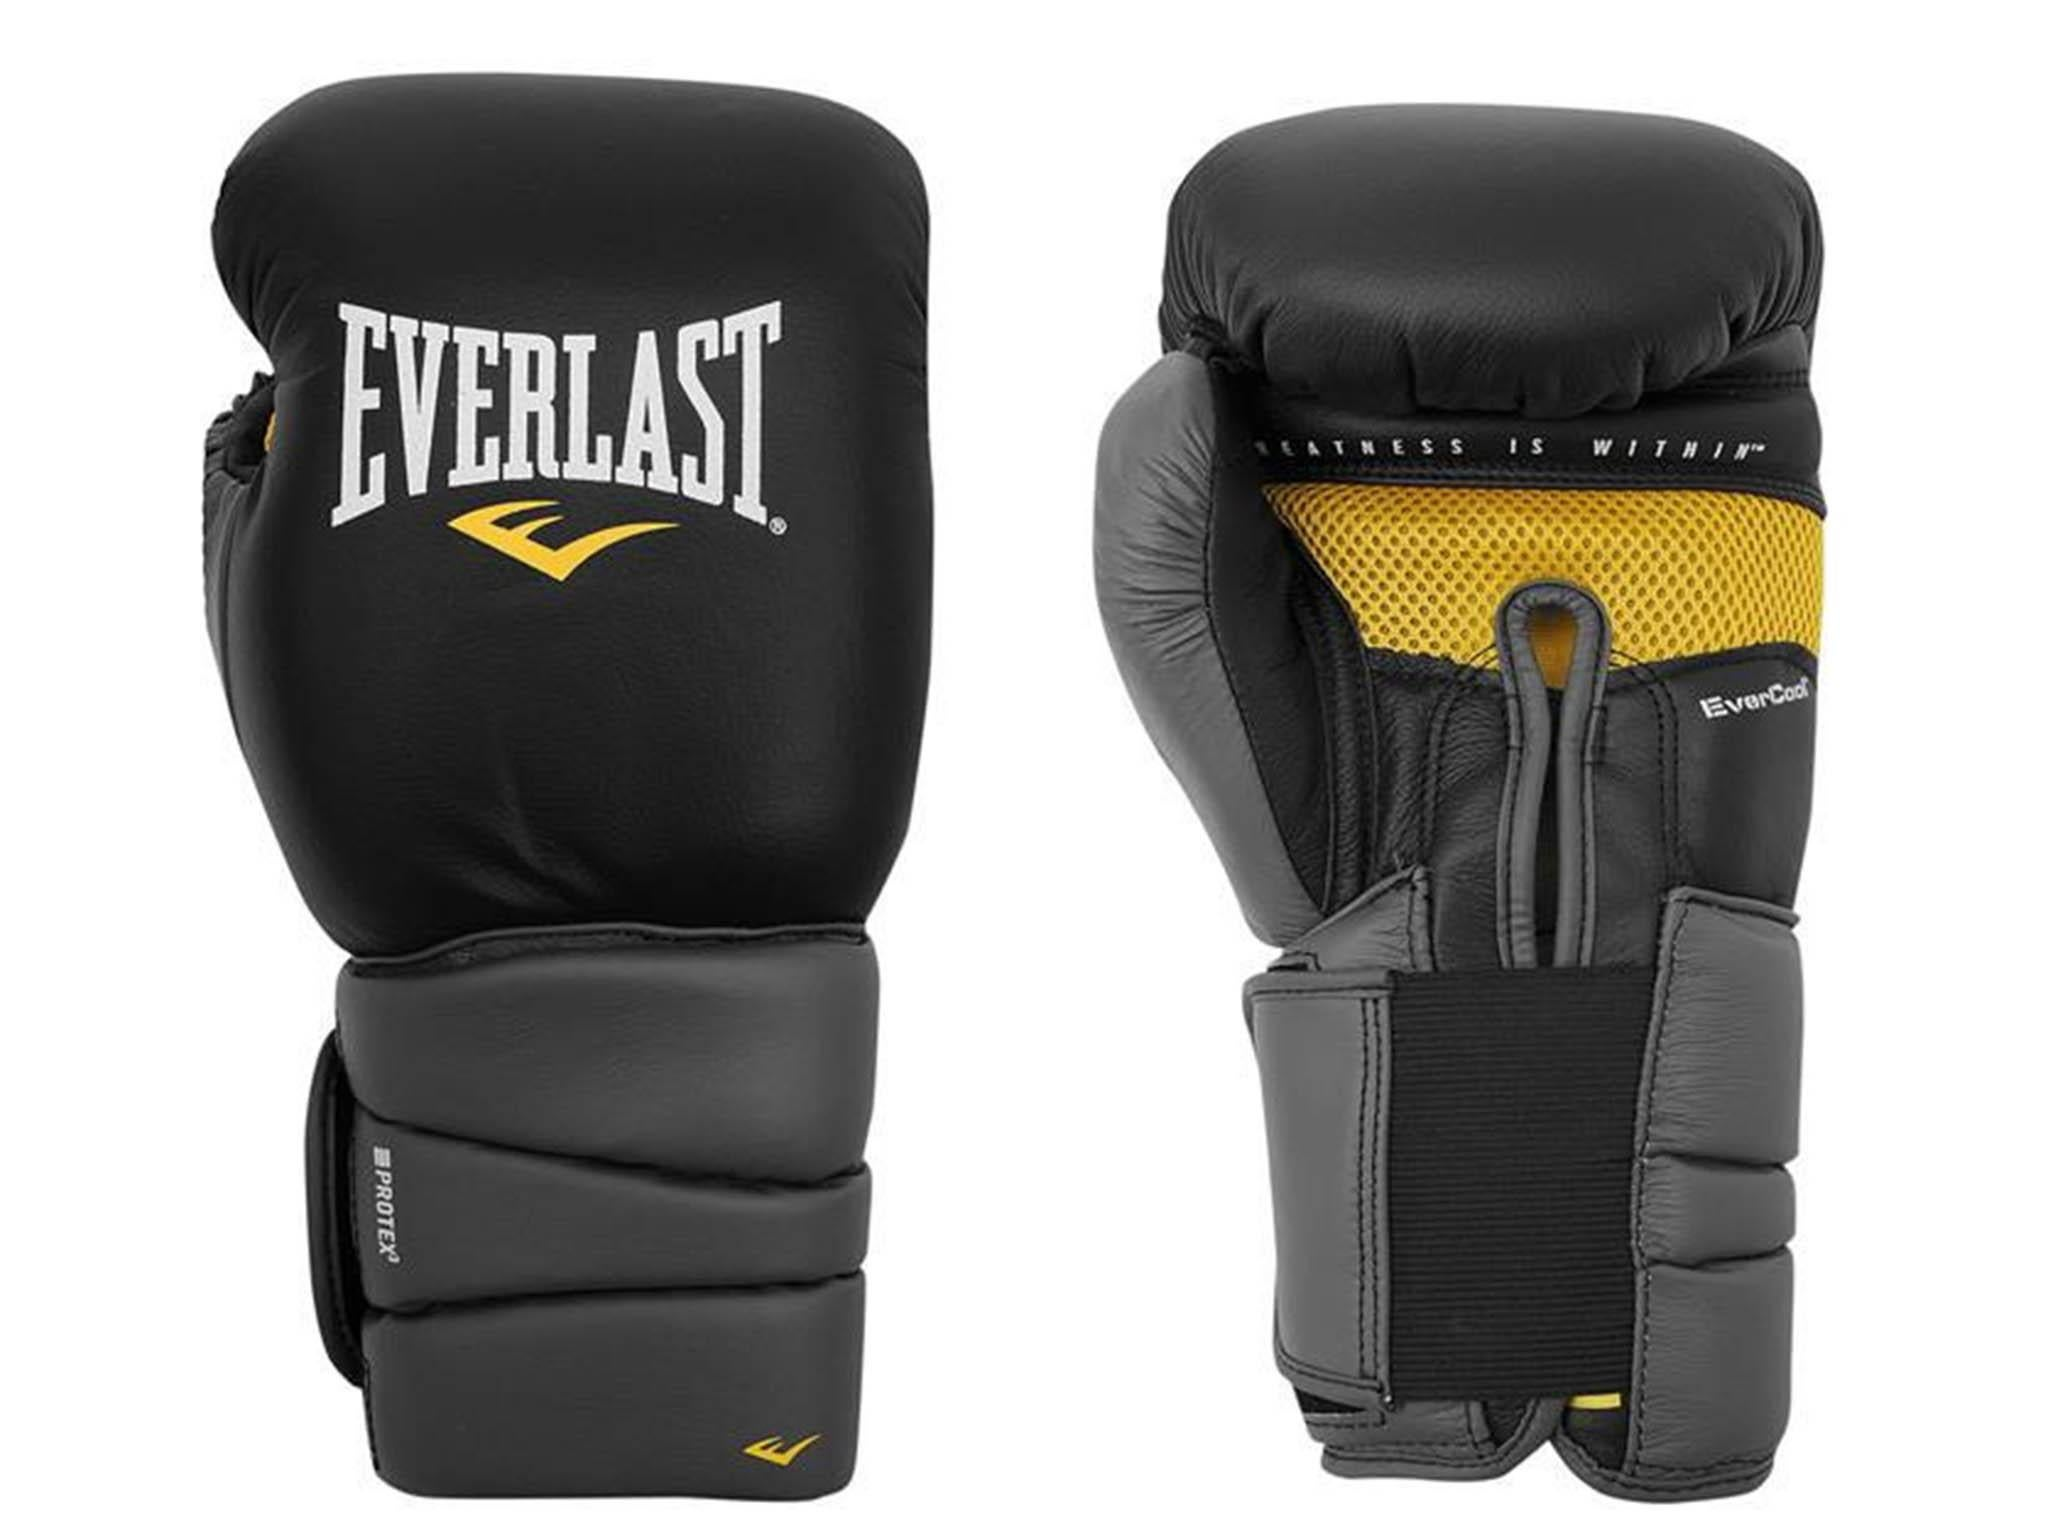 7 best boxing gloves for all-rounders | The Independent